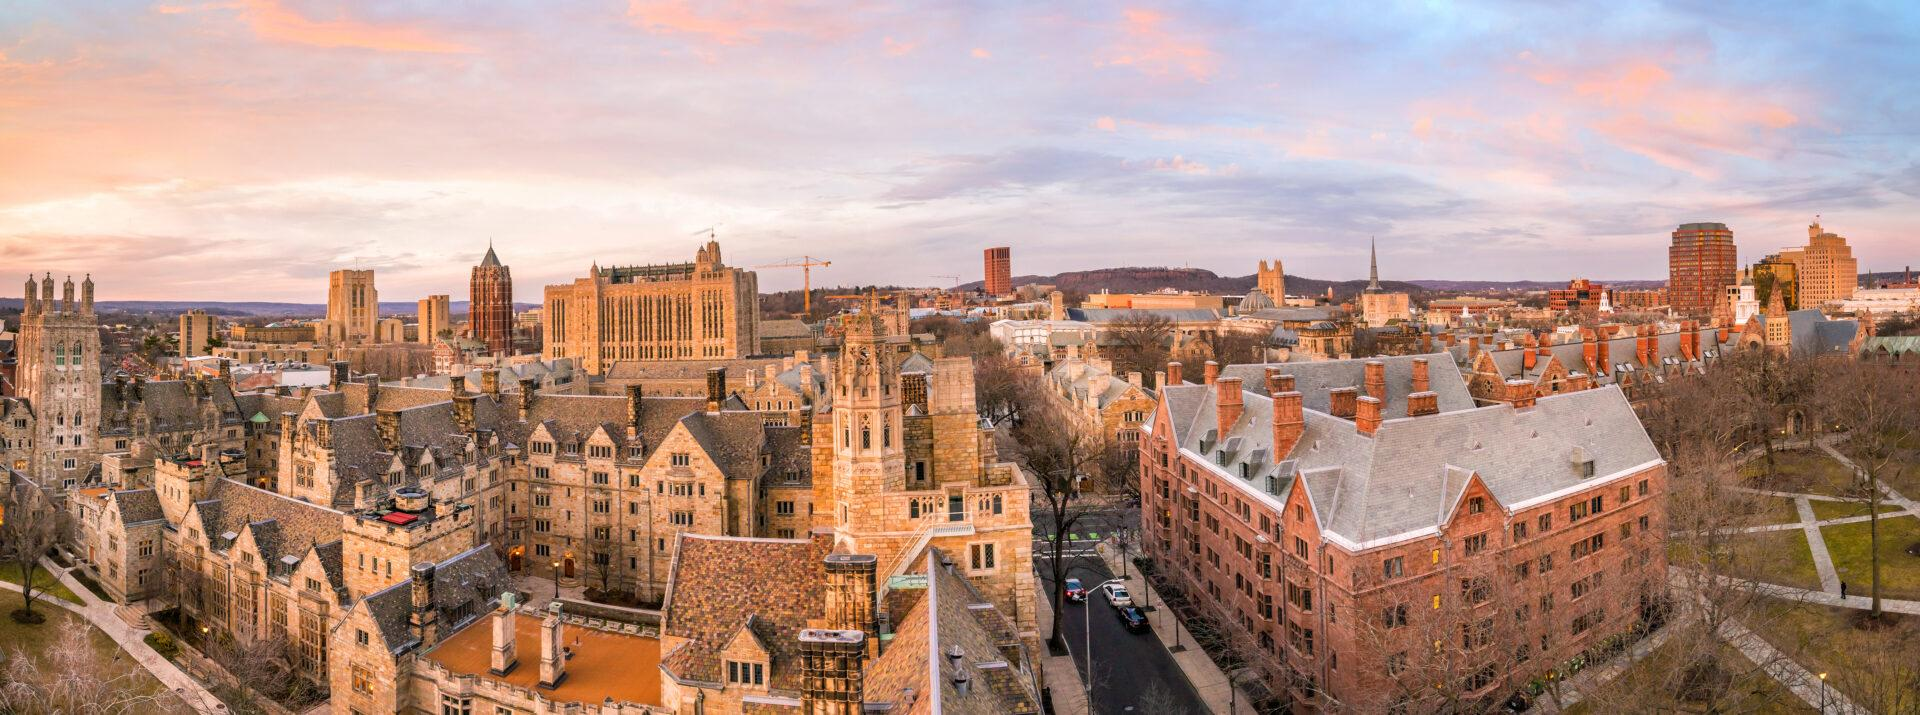 Yale university campus – Xecutives-Interview with Frederick Frank